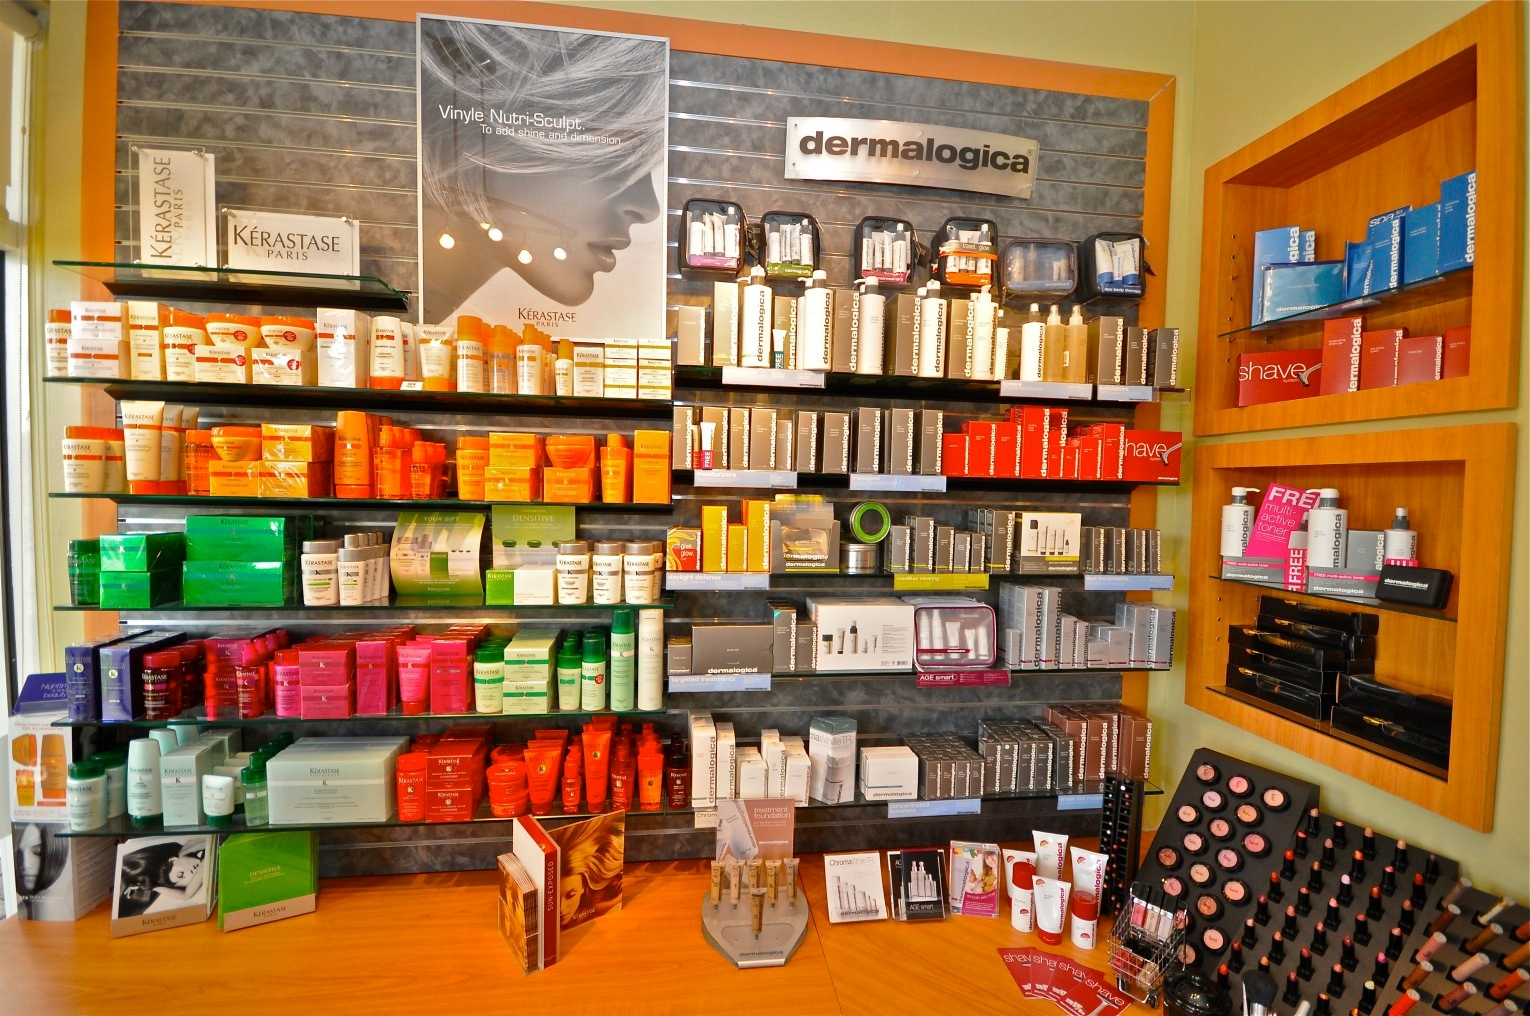 HairVenture Salon and Spa - Weston, FL - We stock Kerastase, Dermalogica, Alterna, OPi, Goldwell, Alfaparf and Moroccan Oil